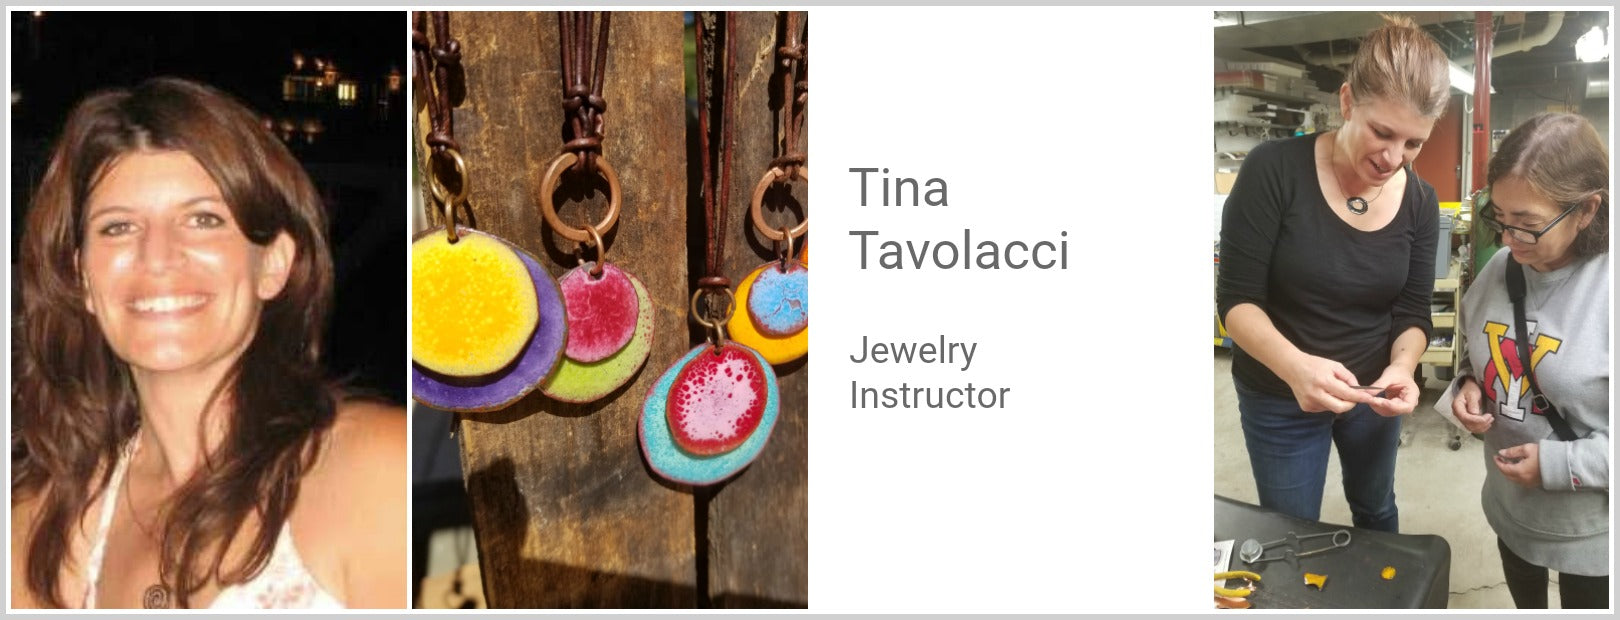 Tina Tavolacci, Jewelry Instructor